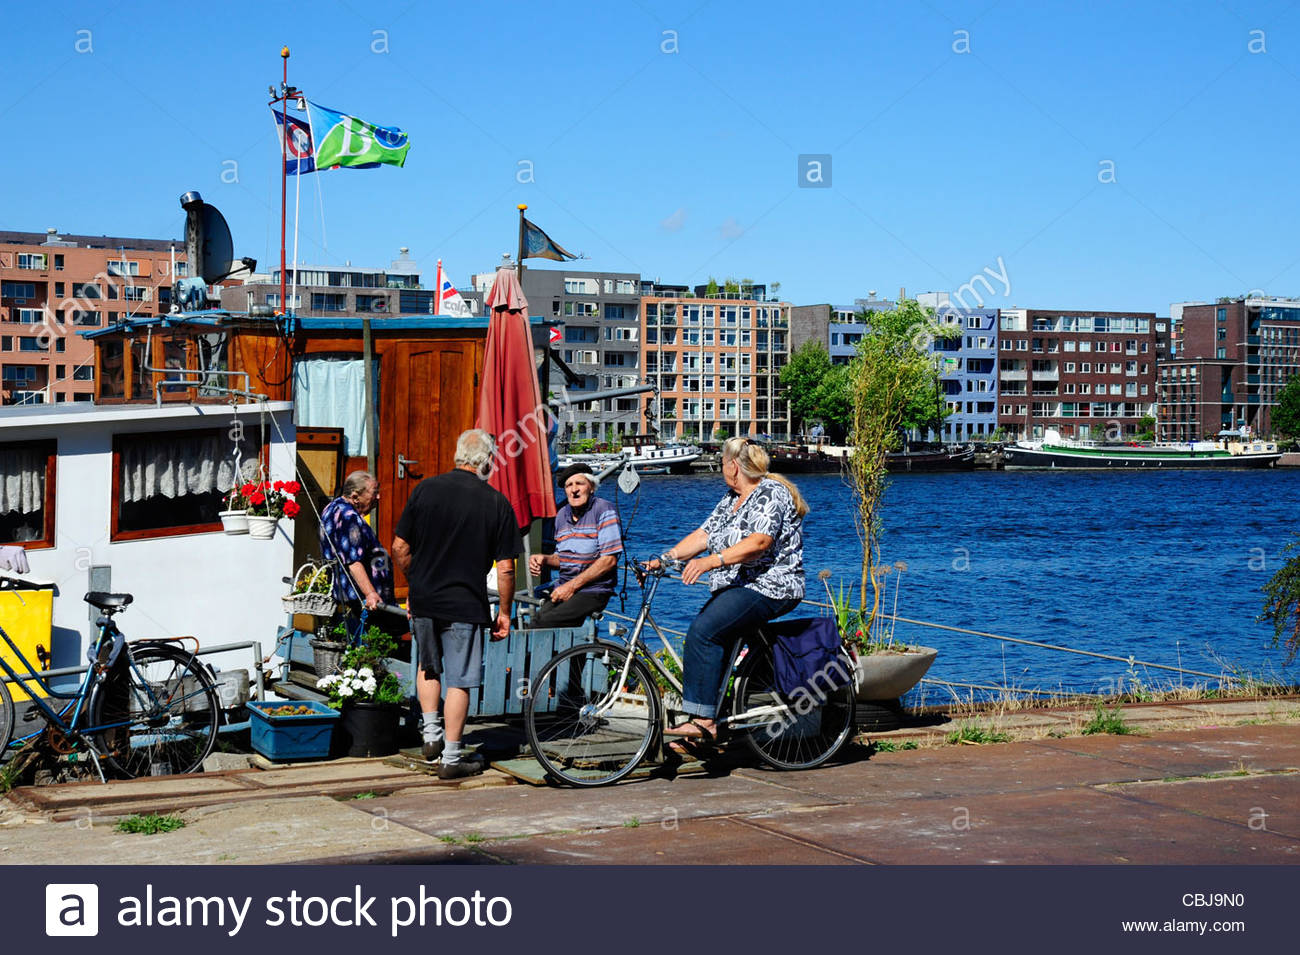 House boat at the Ijhaven canal, Veemkade, at back the island Java-Eiland, Amsterdam, the Netherlands, Europe - Stock Image